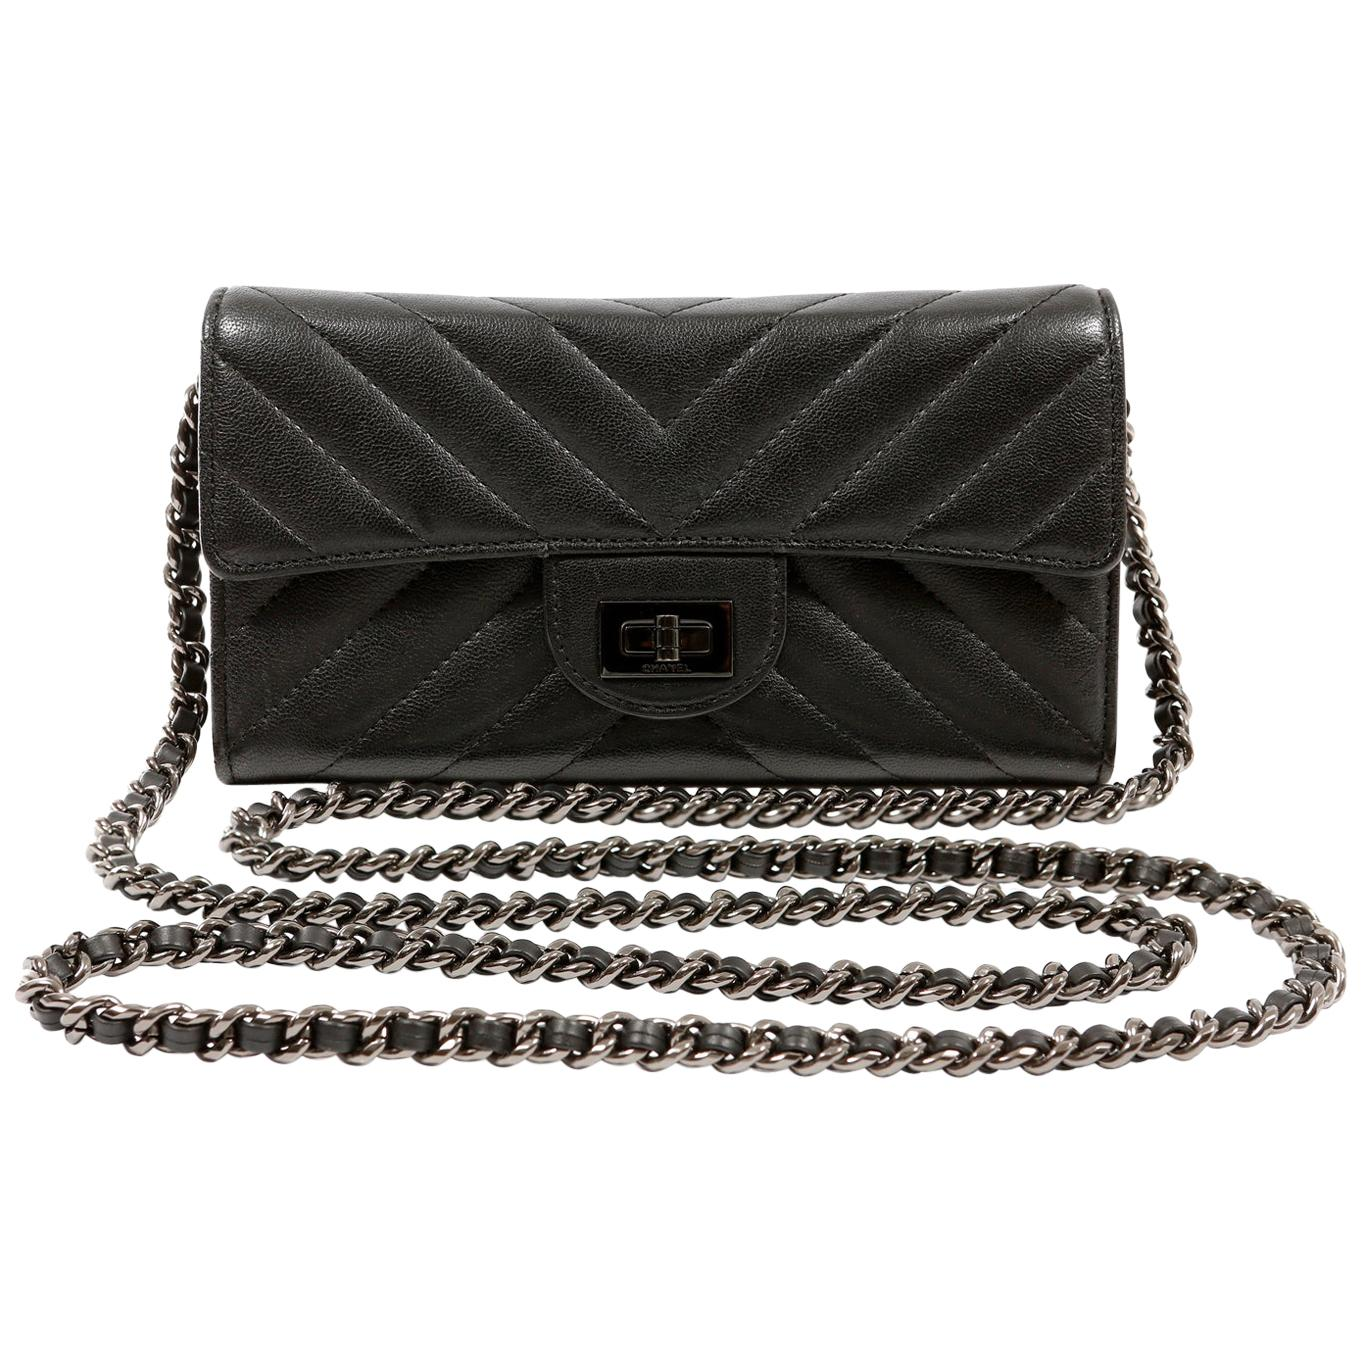 Chanel So Black Chevron Leather Wallet on a Chain